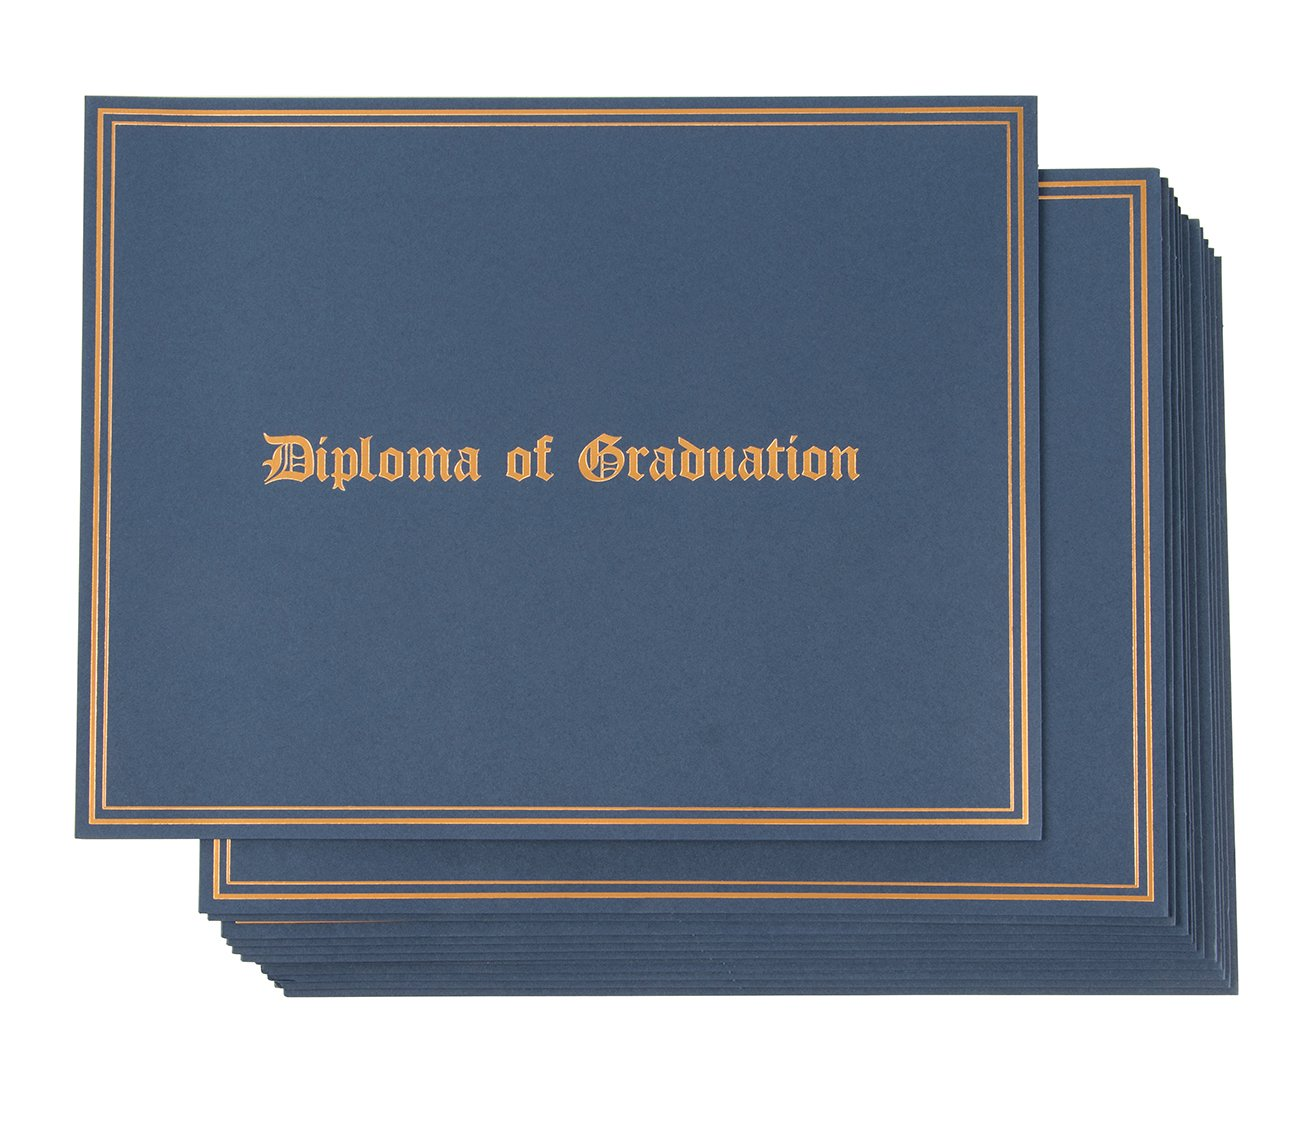 Certificate Holder - 12-Pack Diploma Covers for Graduation Ceremony, Document Holder for Letter-Sized Award Certificates, Blue with Gold Foil Designs, 11.2 x 8.7 Inches